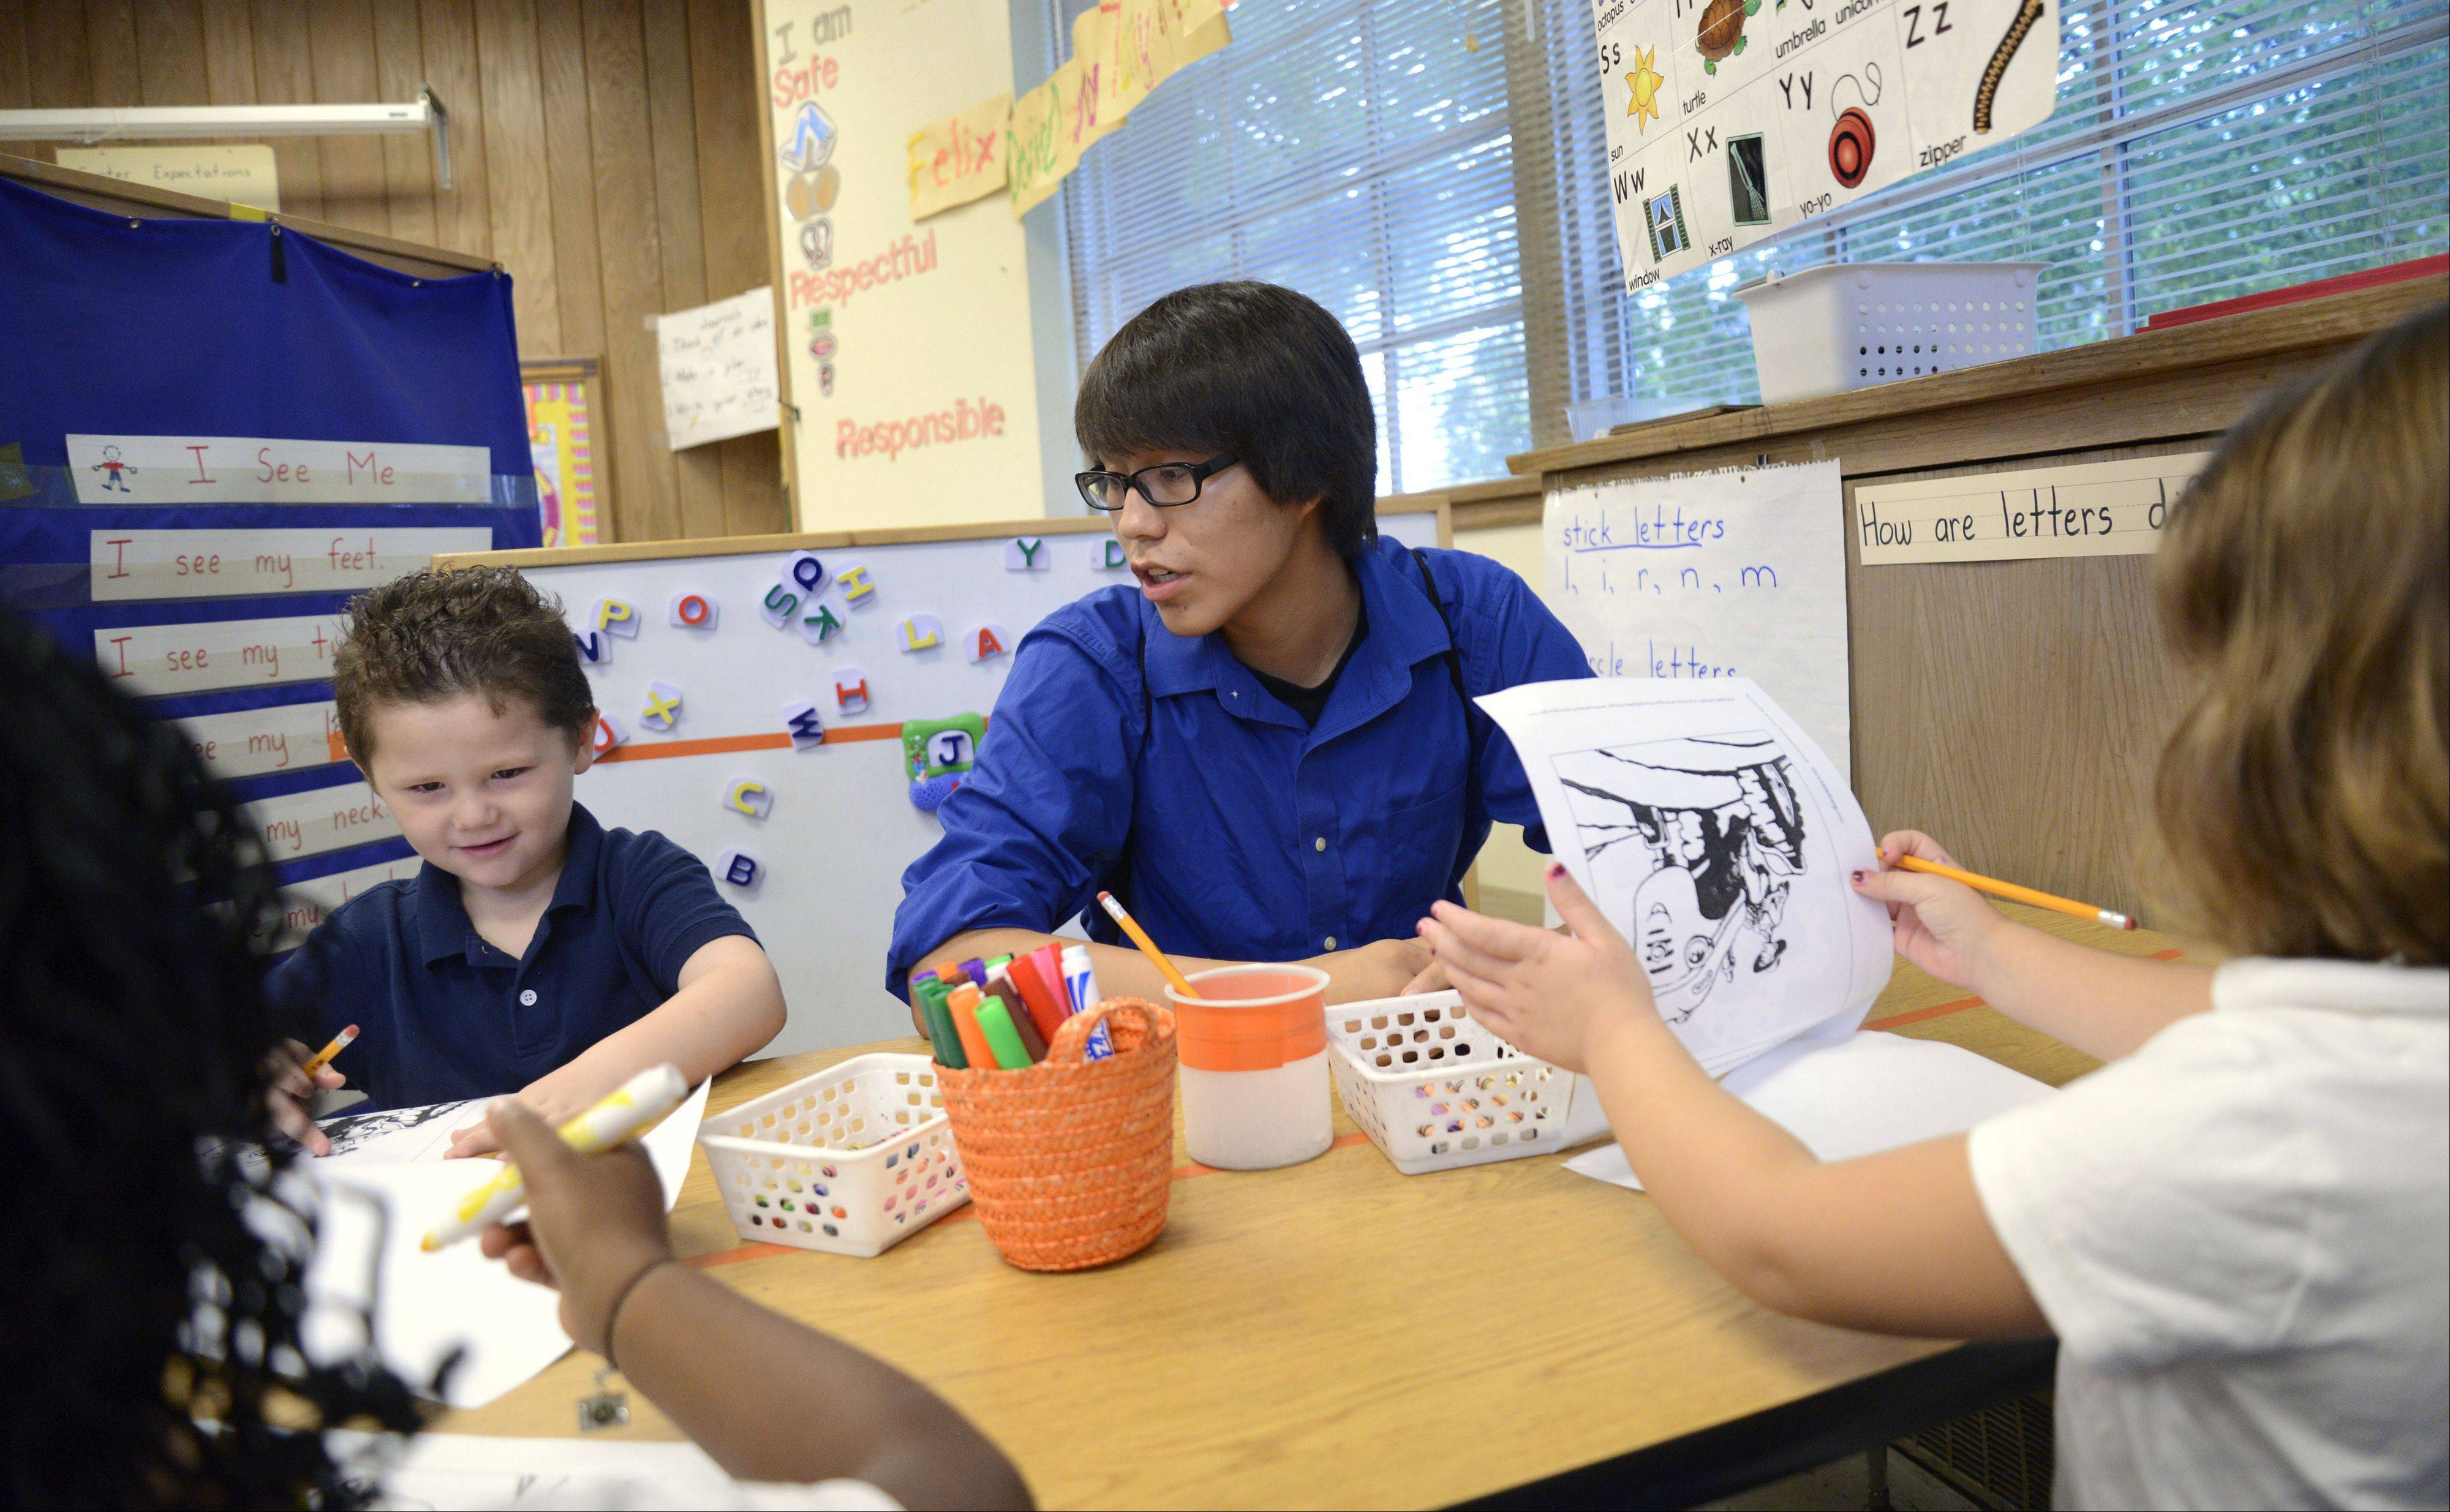 Nathaniel Evans works with Felix Feliciano and other kindergartners at Gifford Elementary School in Elgin. Nathaniel is a member of the Future Teachers Club of Larkin High School.